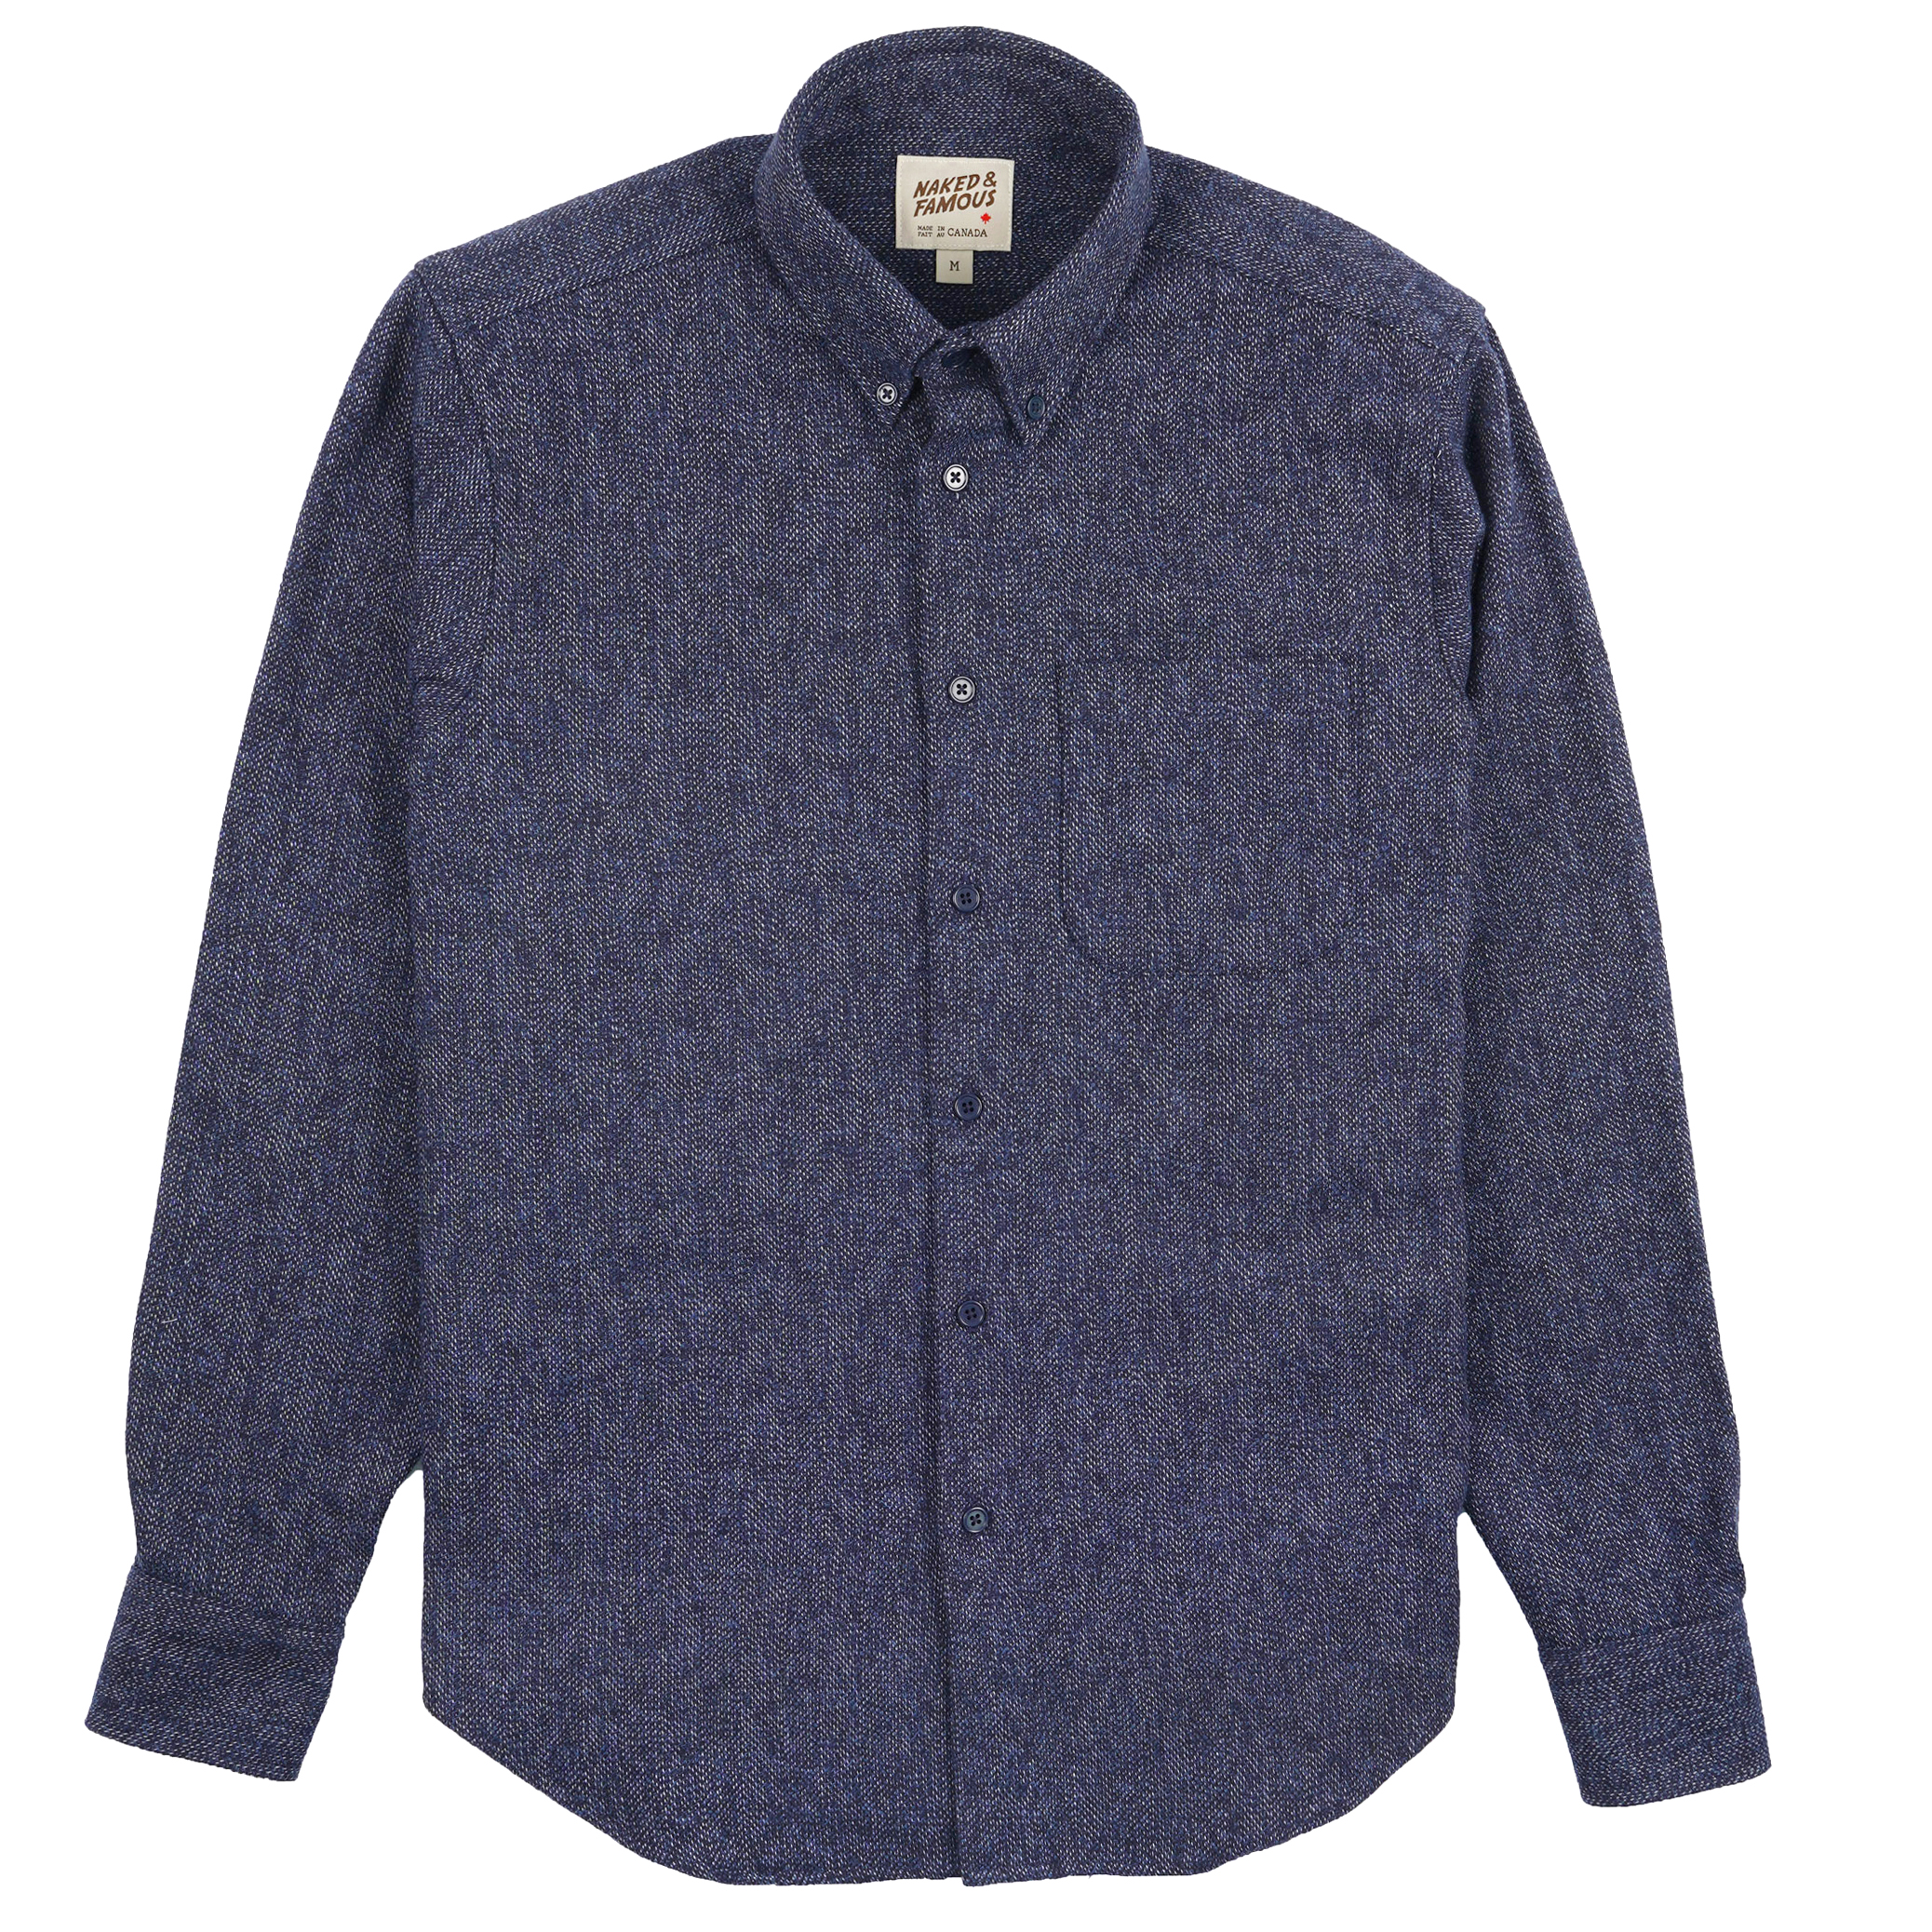 Cotton Tweed - Blue - Easy Shirt